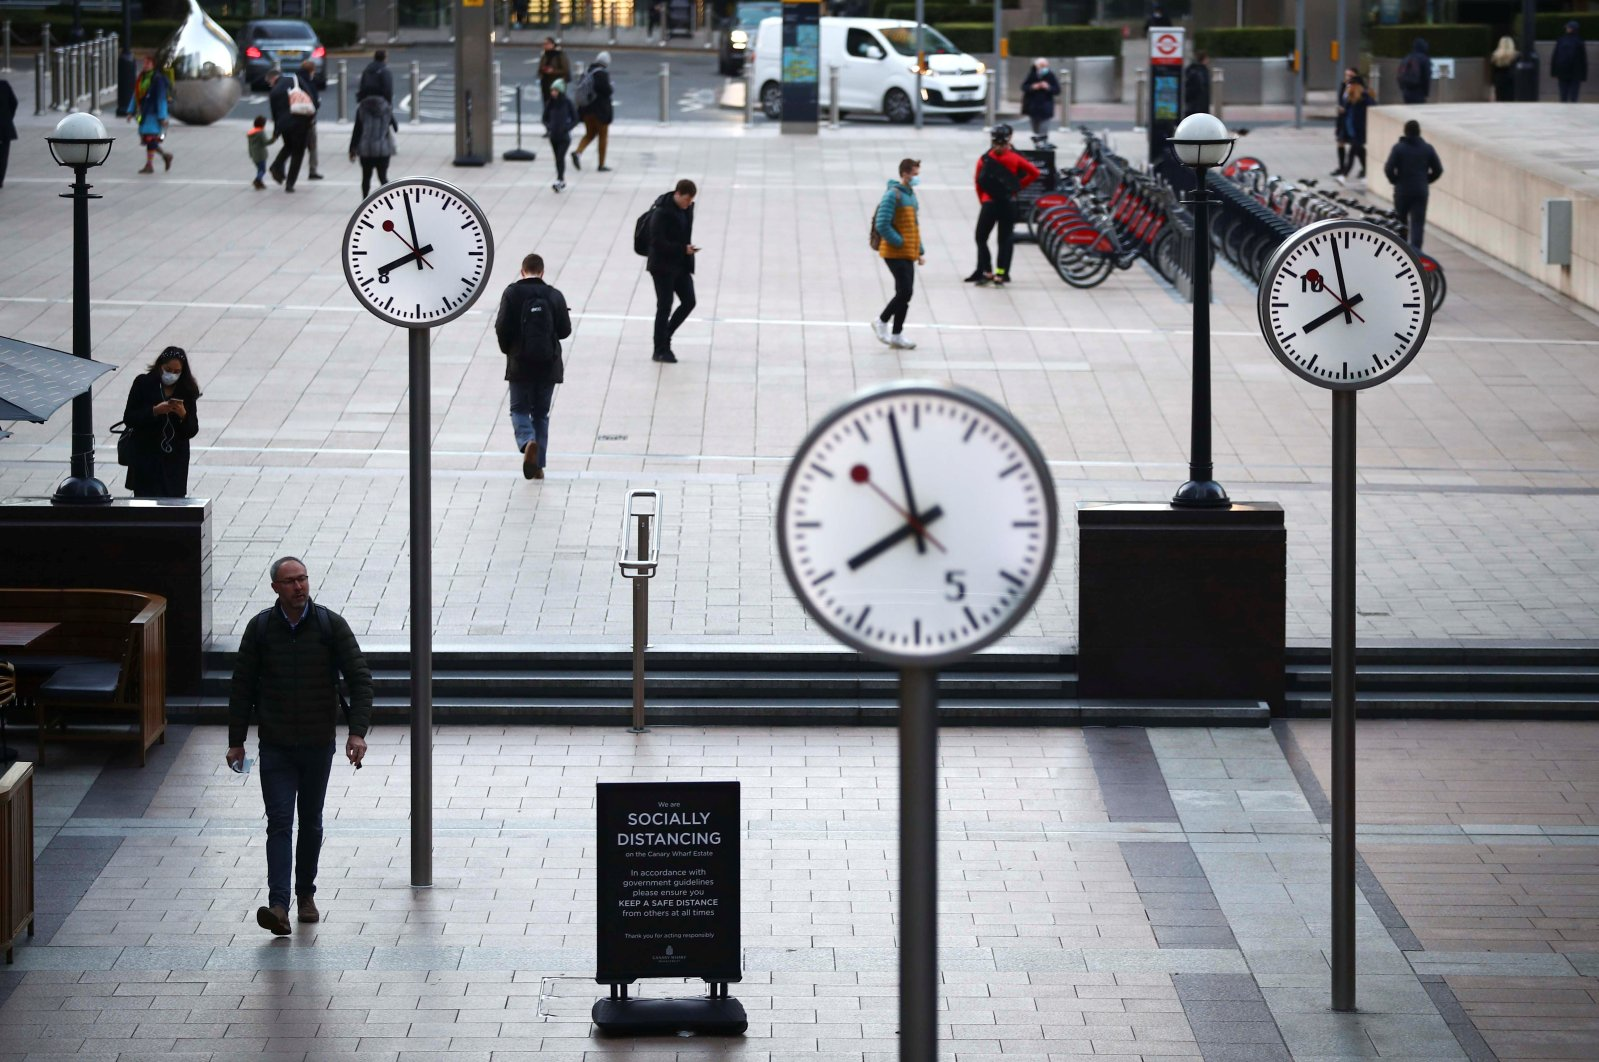 People walk during the morning rush hour in the Canary Wharf amid the outbreak of the coronavirus disease (COVID-19) in London, Britain, Oct. 15, 2020. (Reuters Photo)